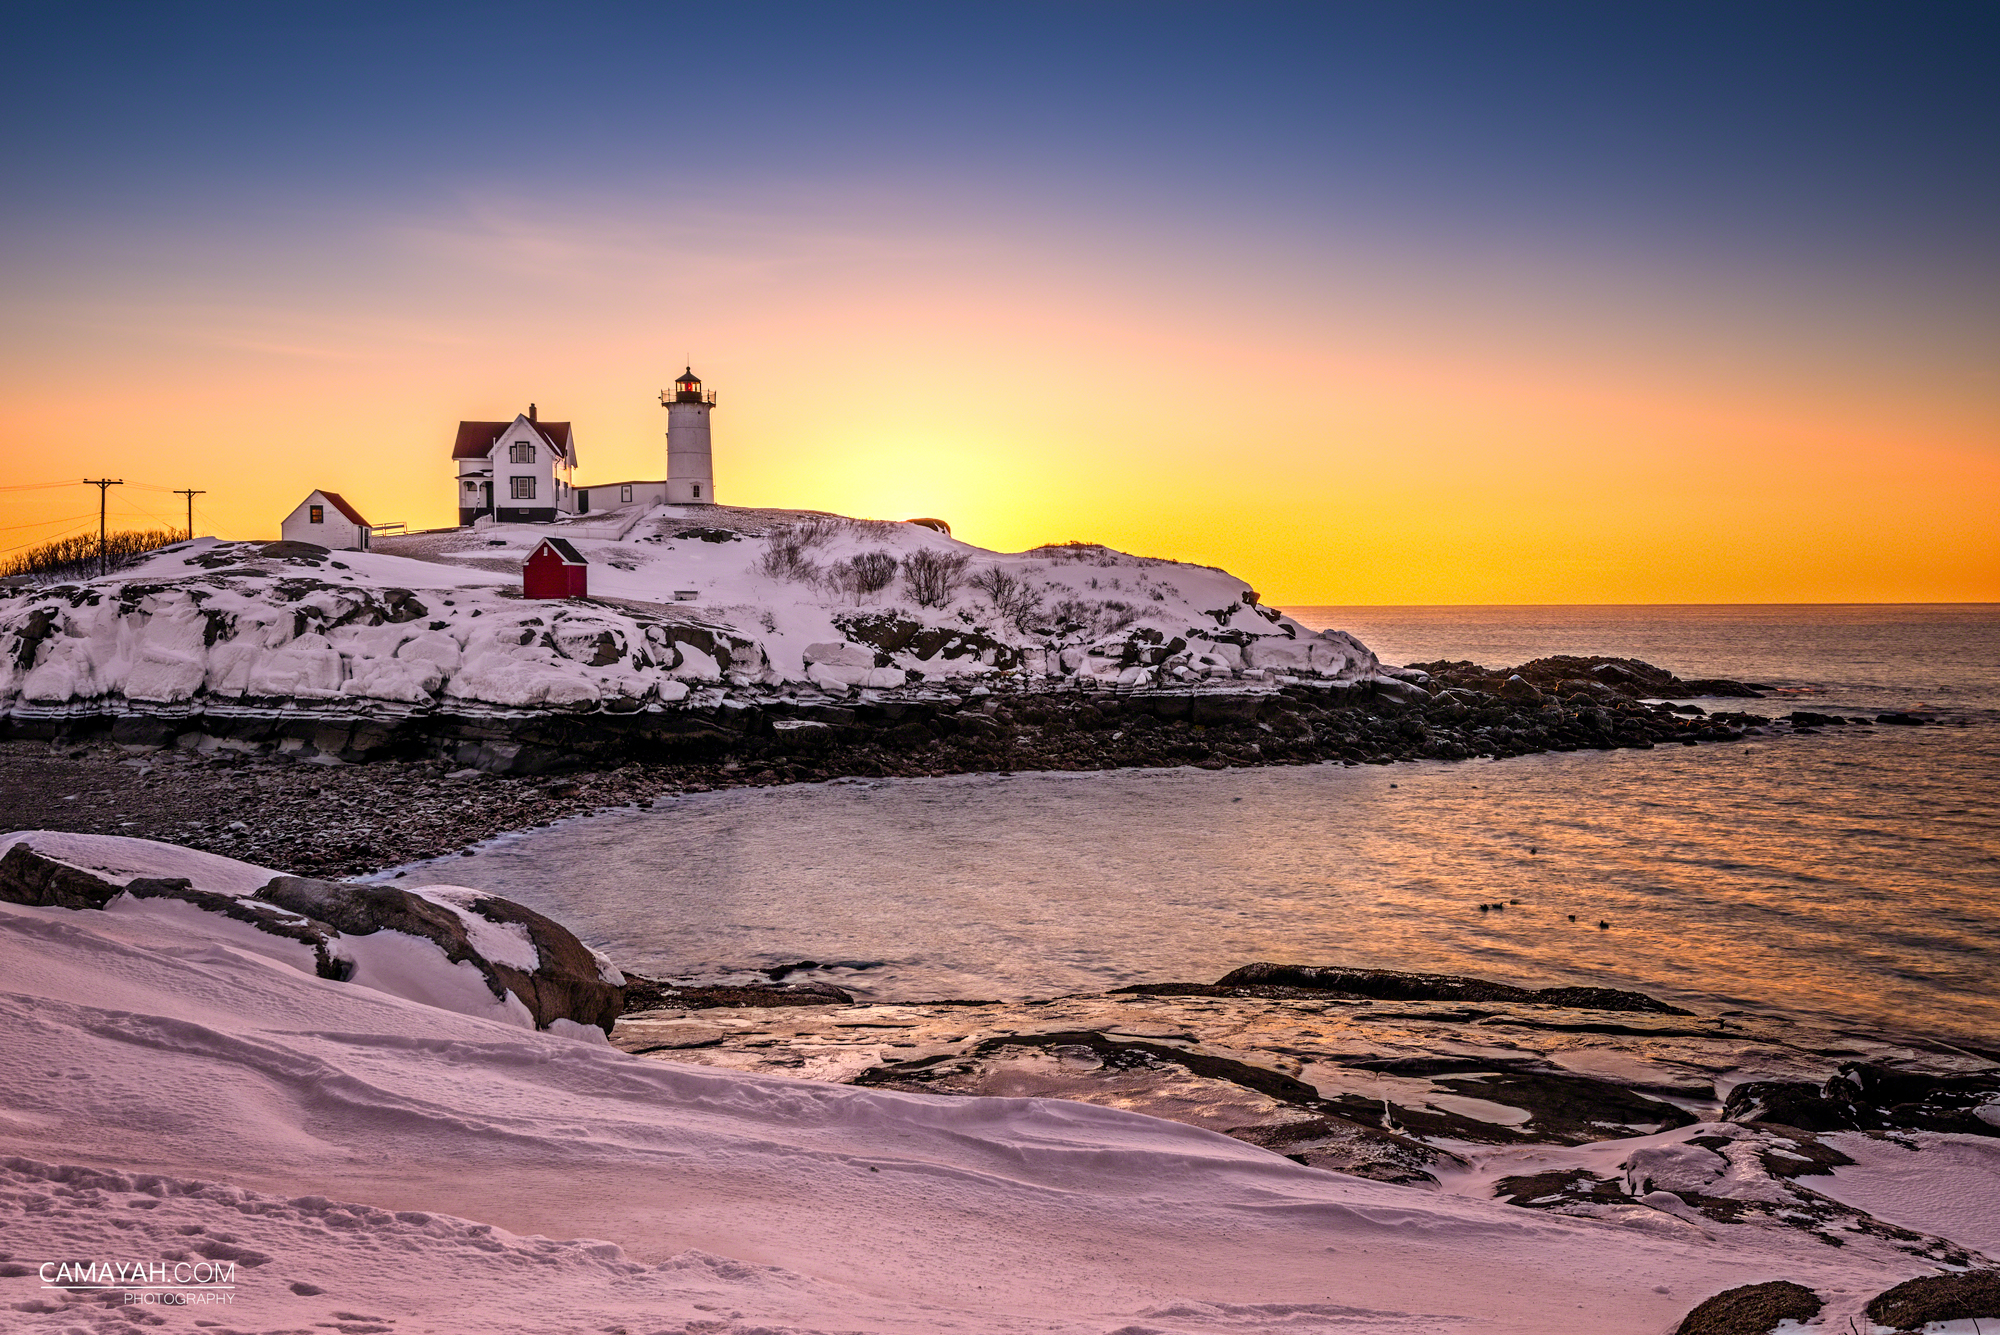 Nubble Lighthouse | Camayah Photography